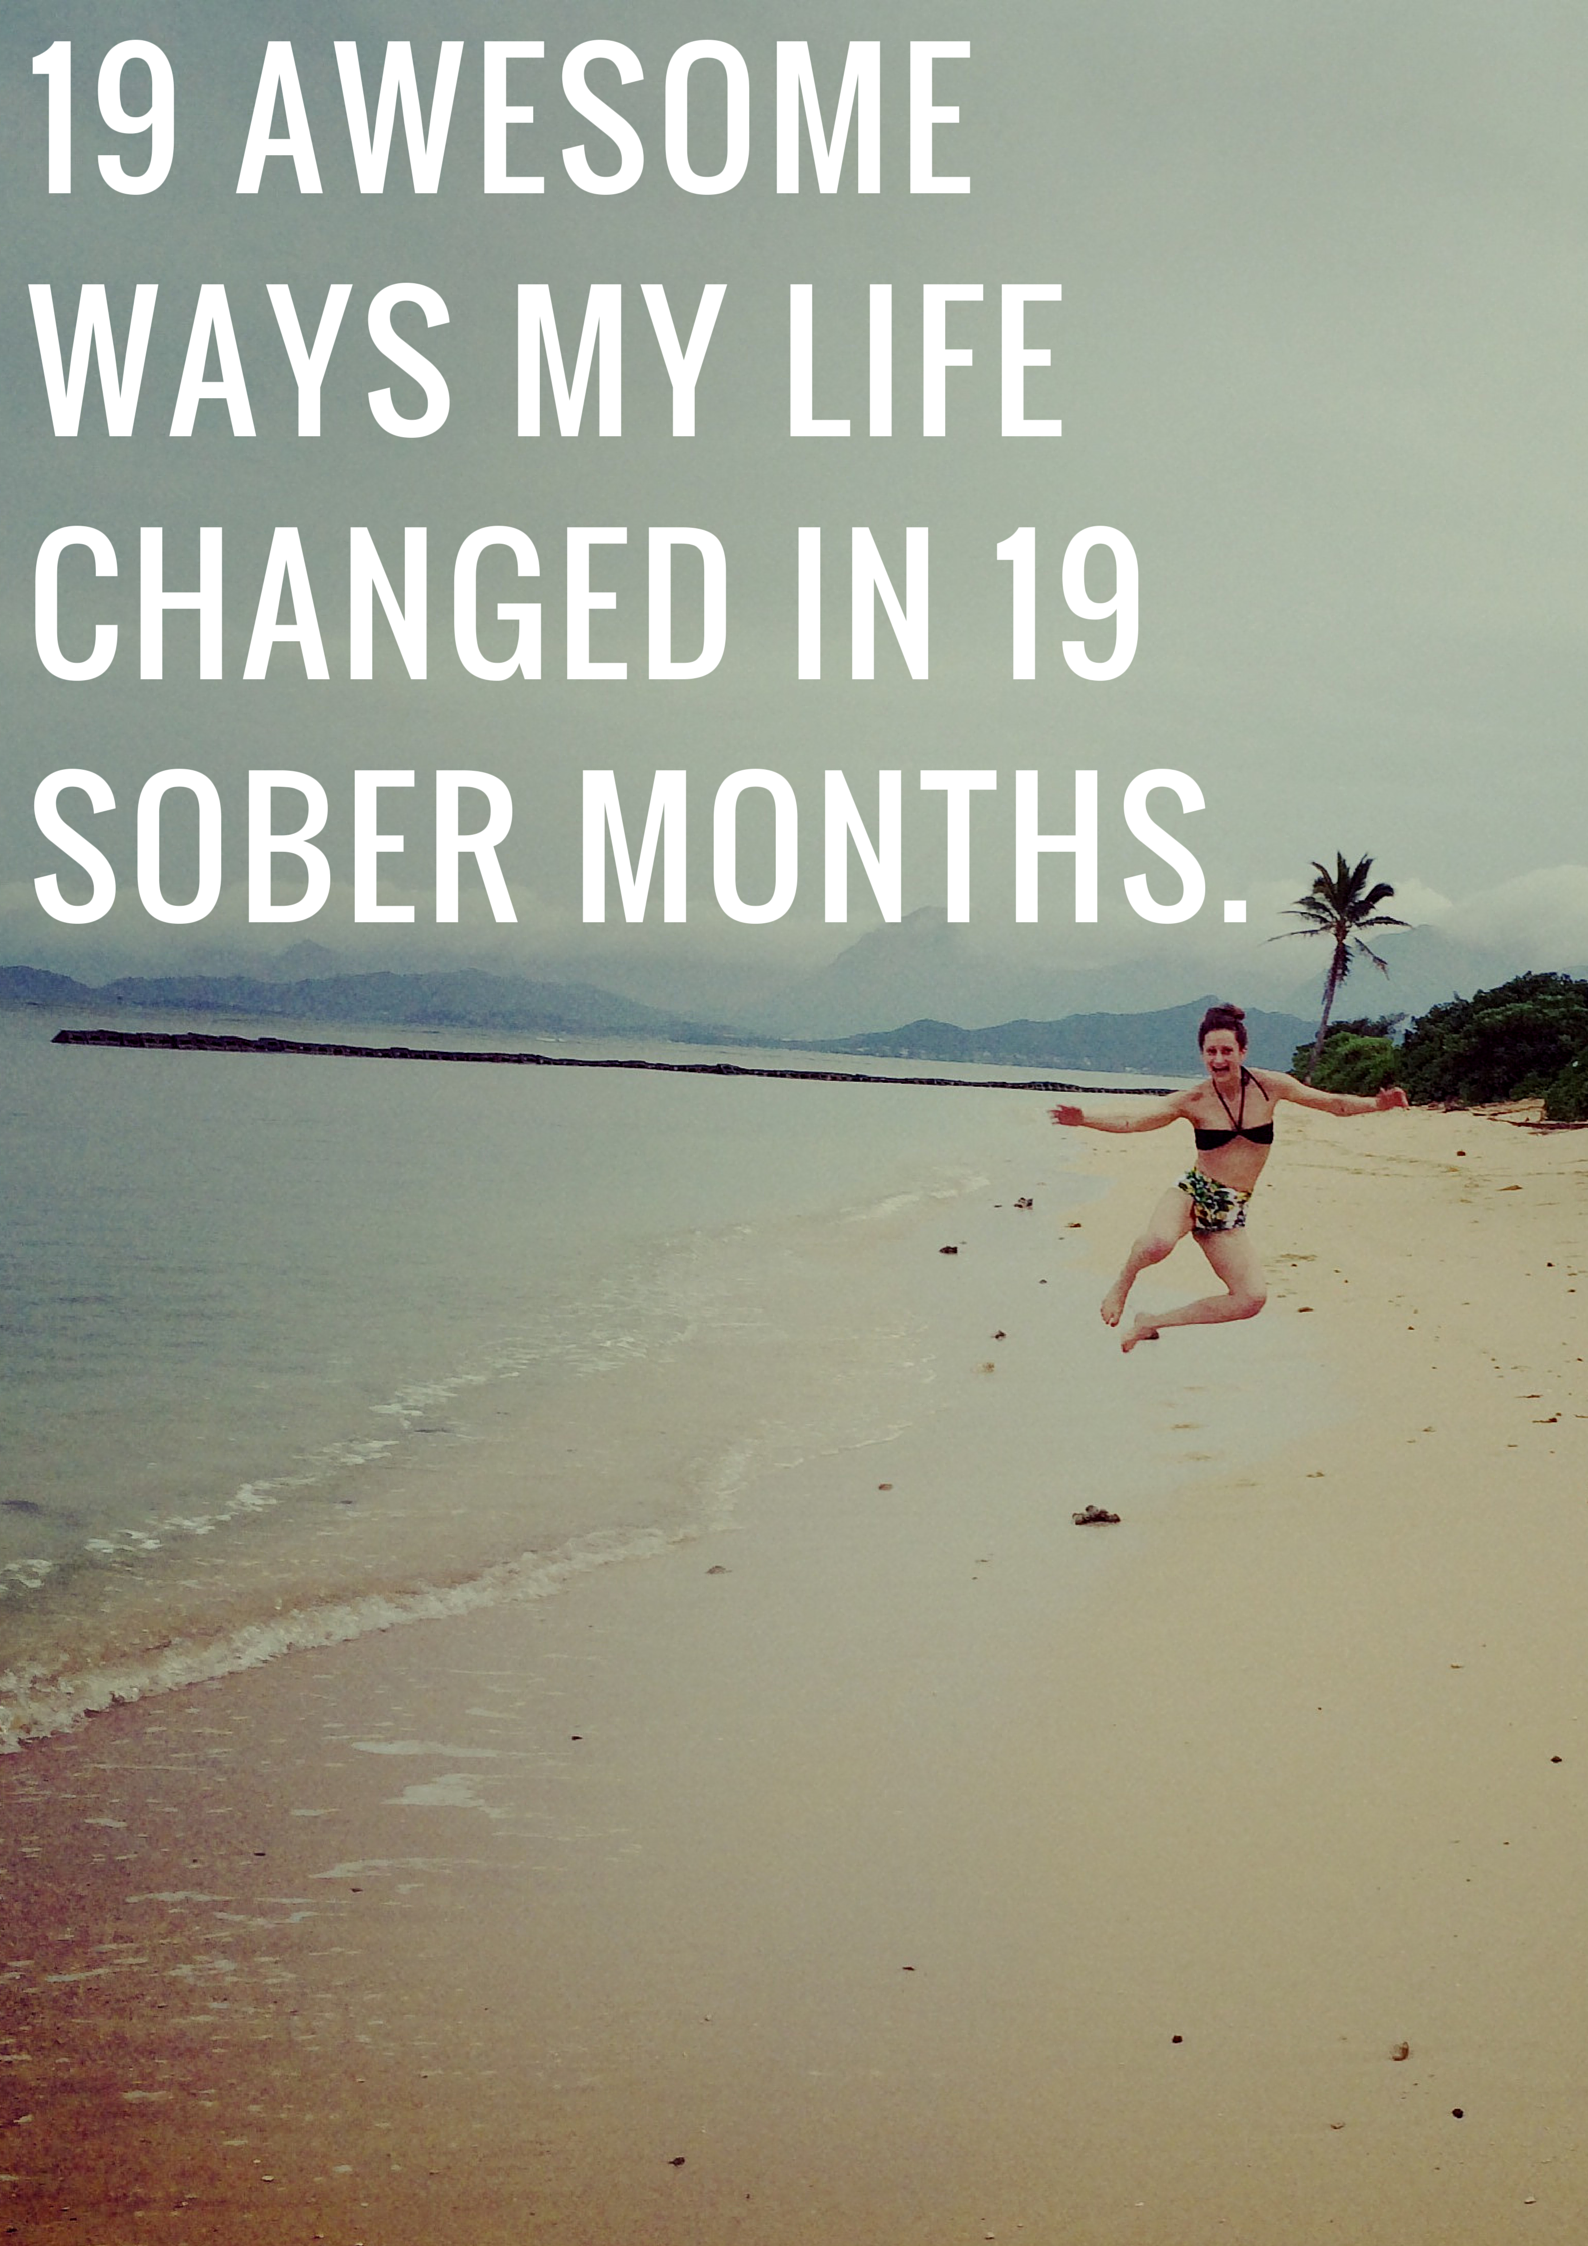 19 AWESOME WAYS MY LIFE CHANGED IN 19 SOBER MONTHS.png